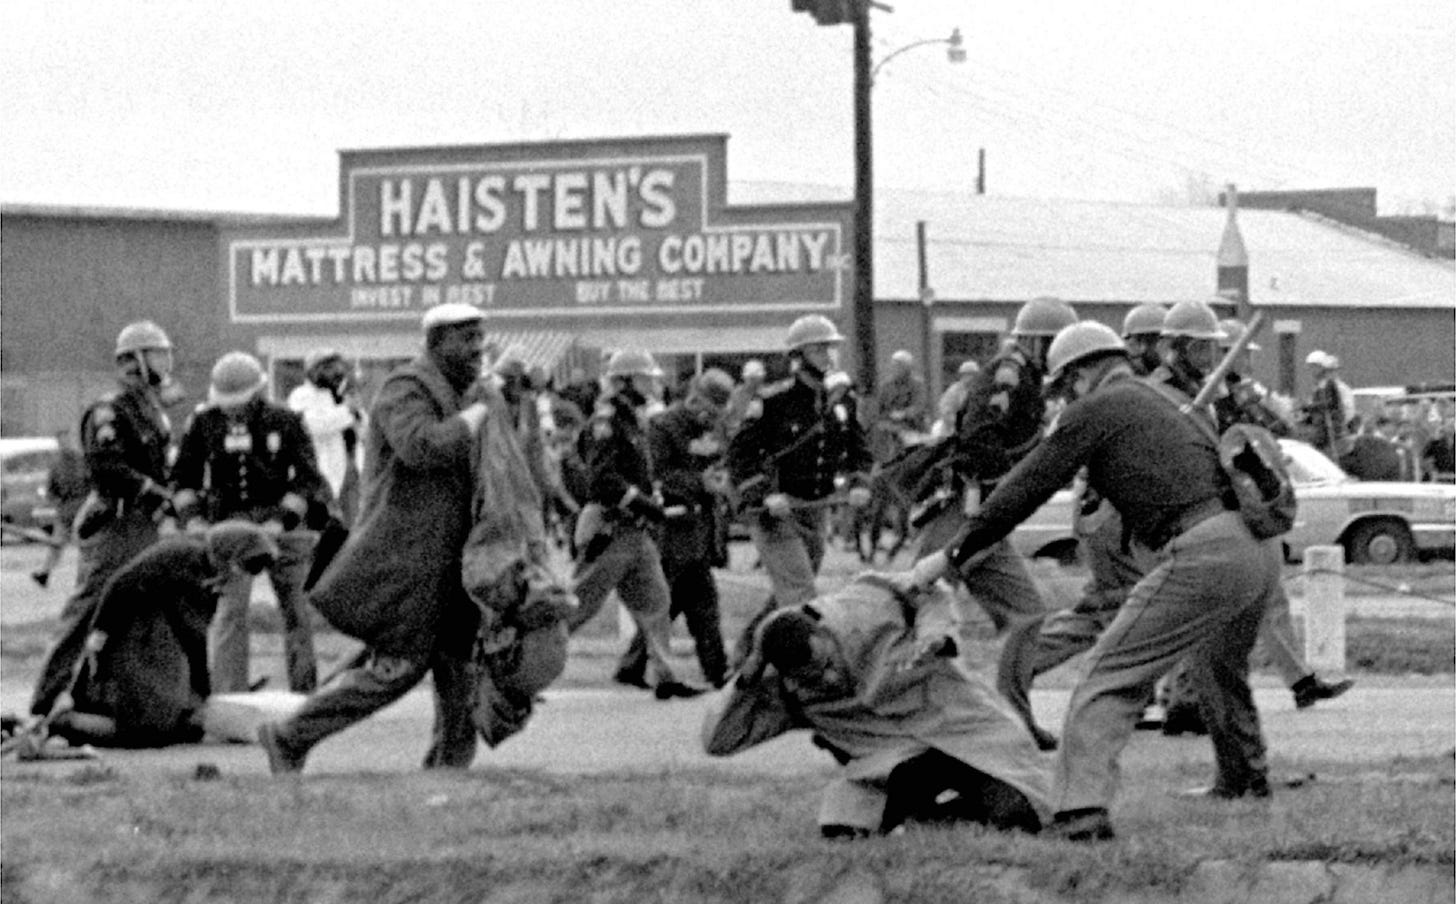 50 Years After March On Washington, John Lewis Still Fights | KUNC